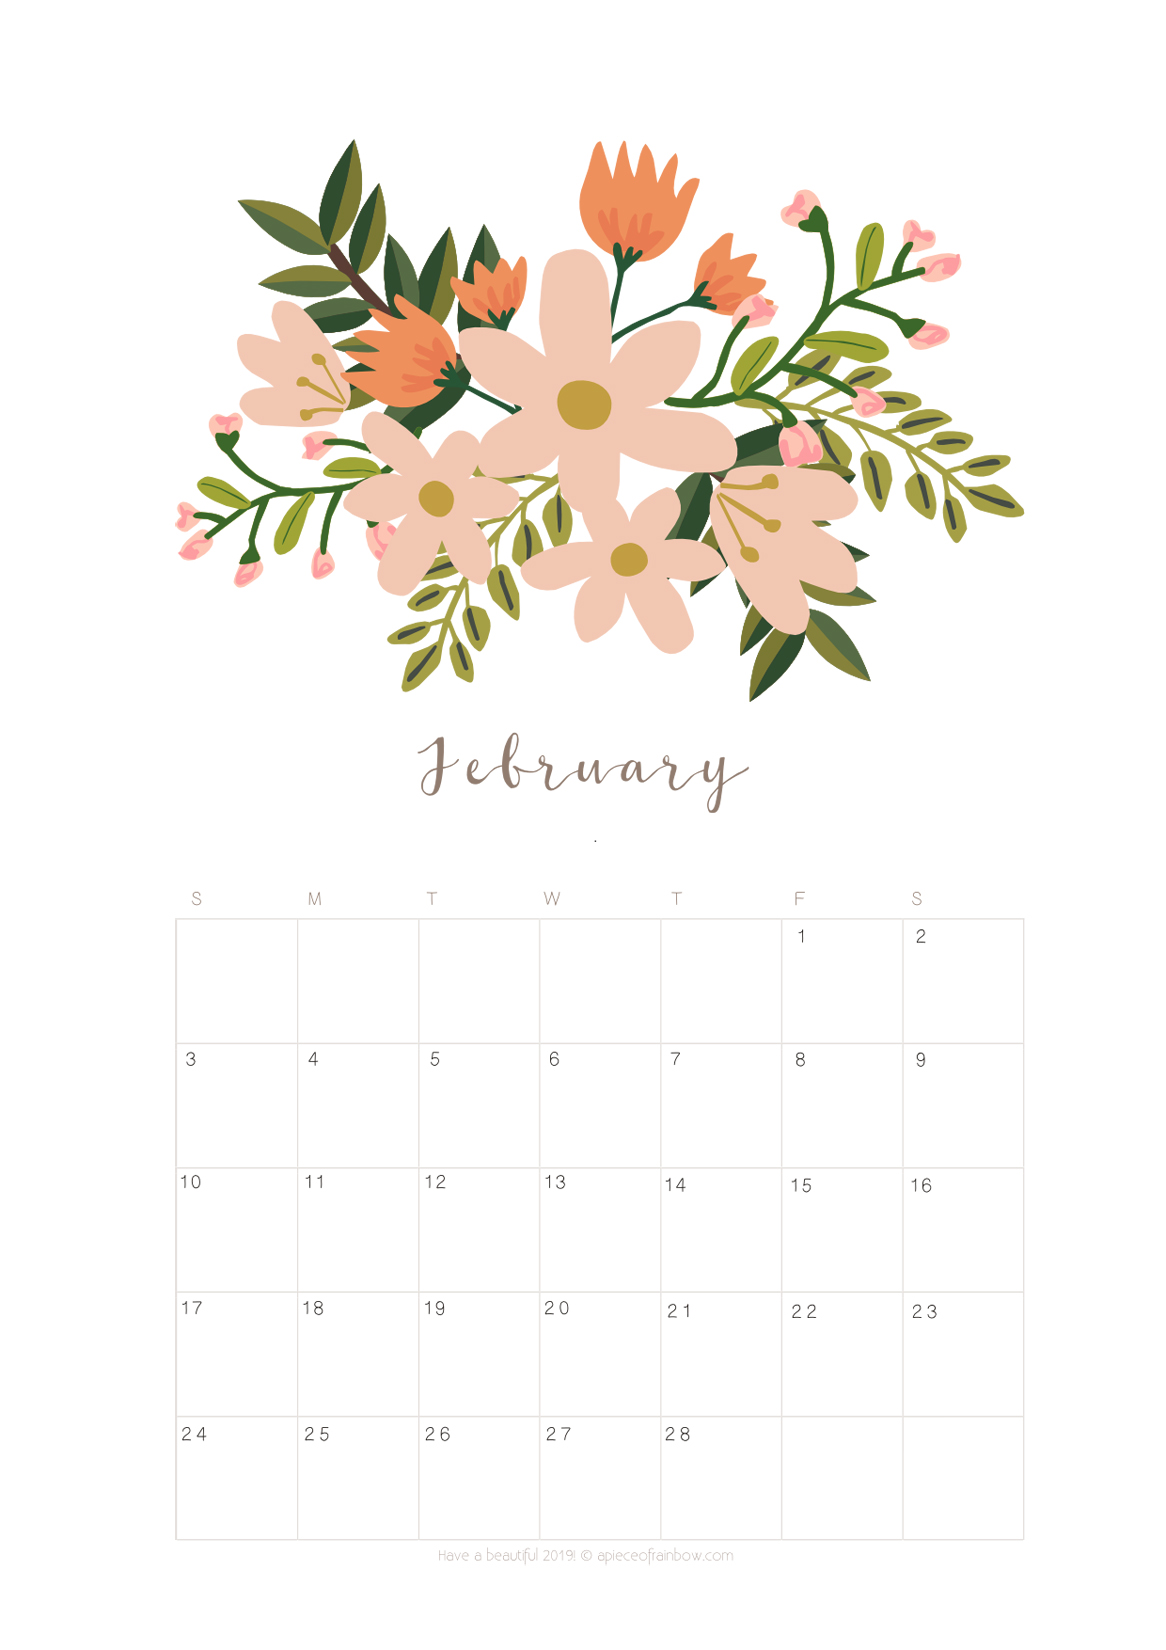 Calendar February 2019 Flowers Printable February 2019 Calendar Monthly Planner {2 Designs